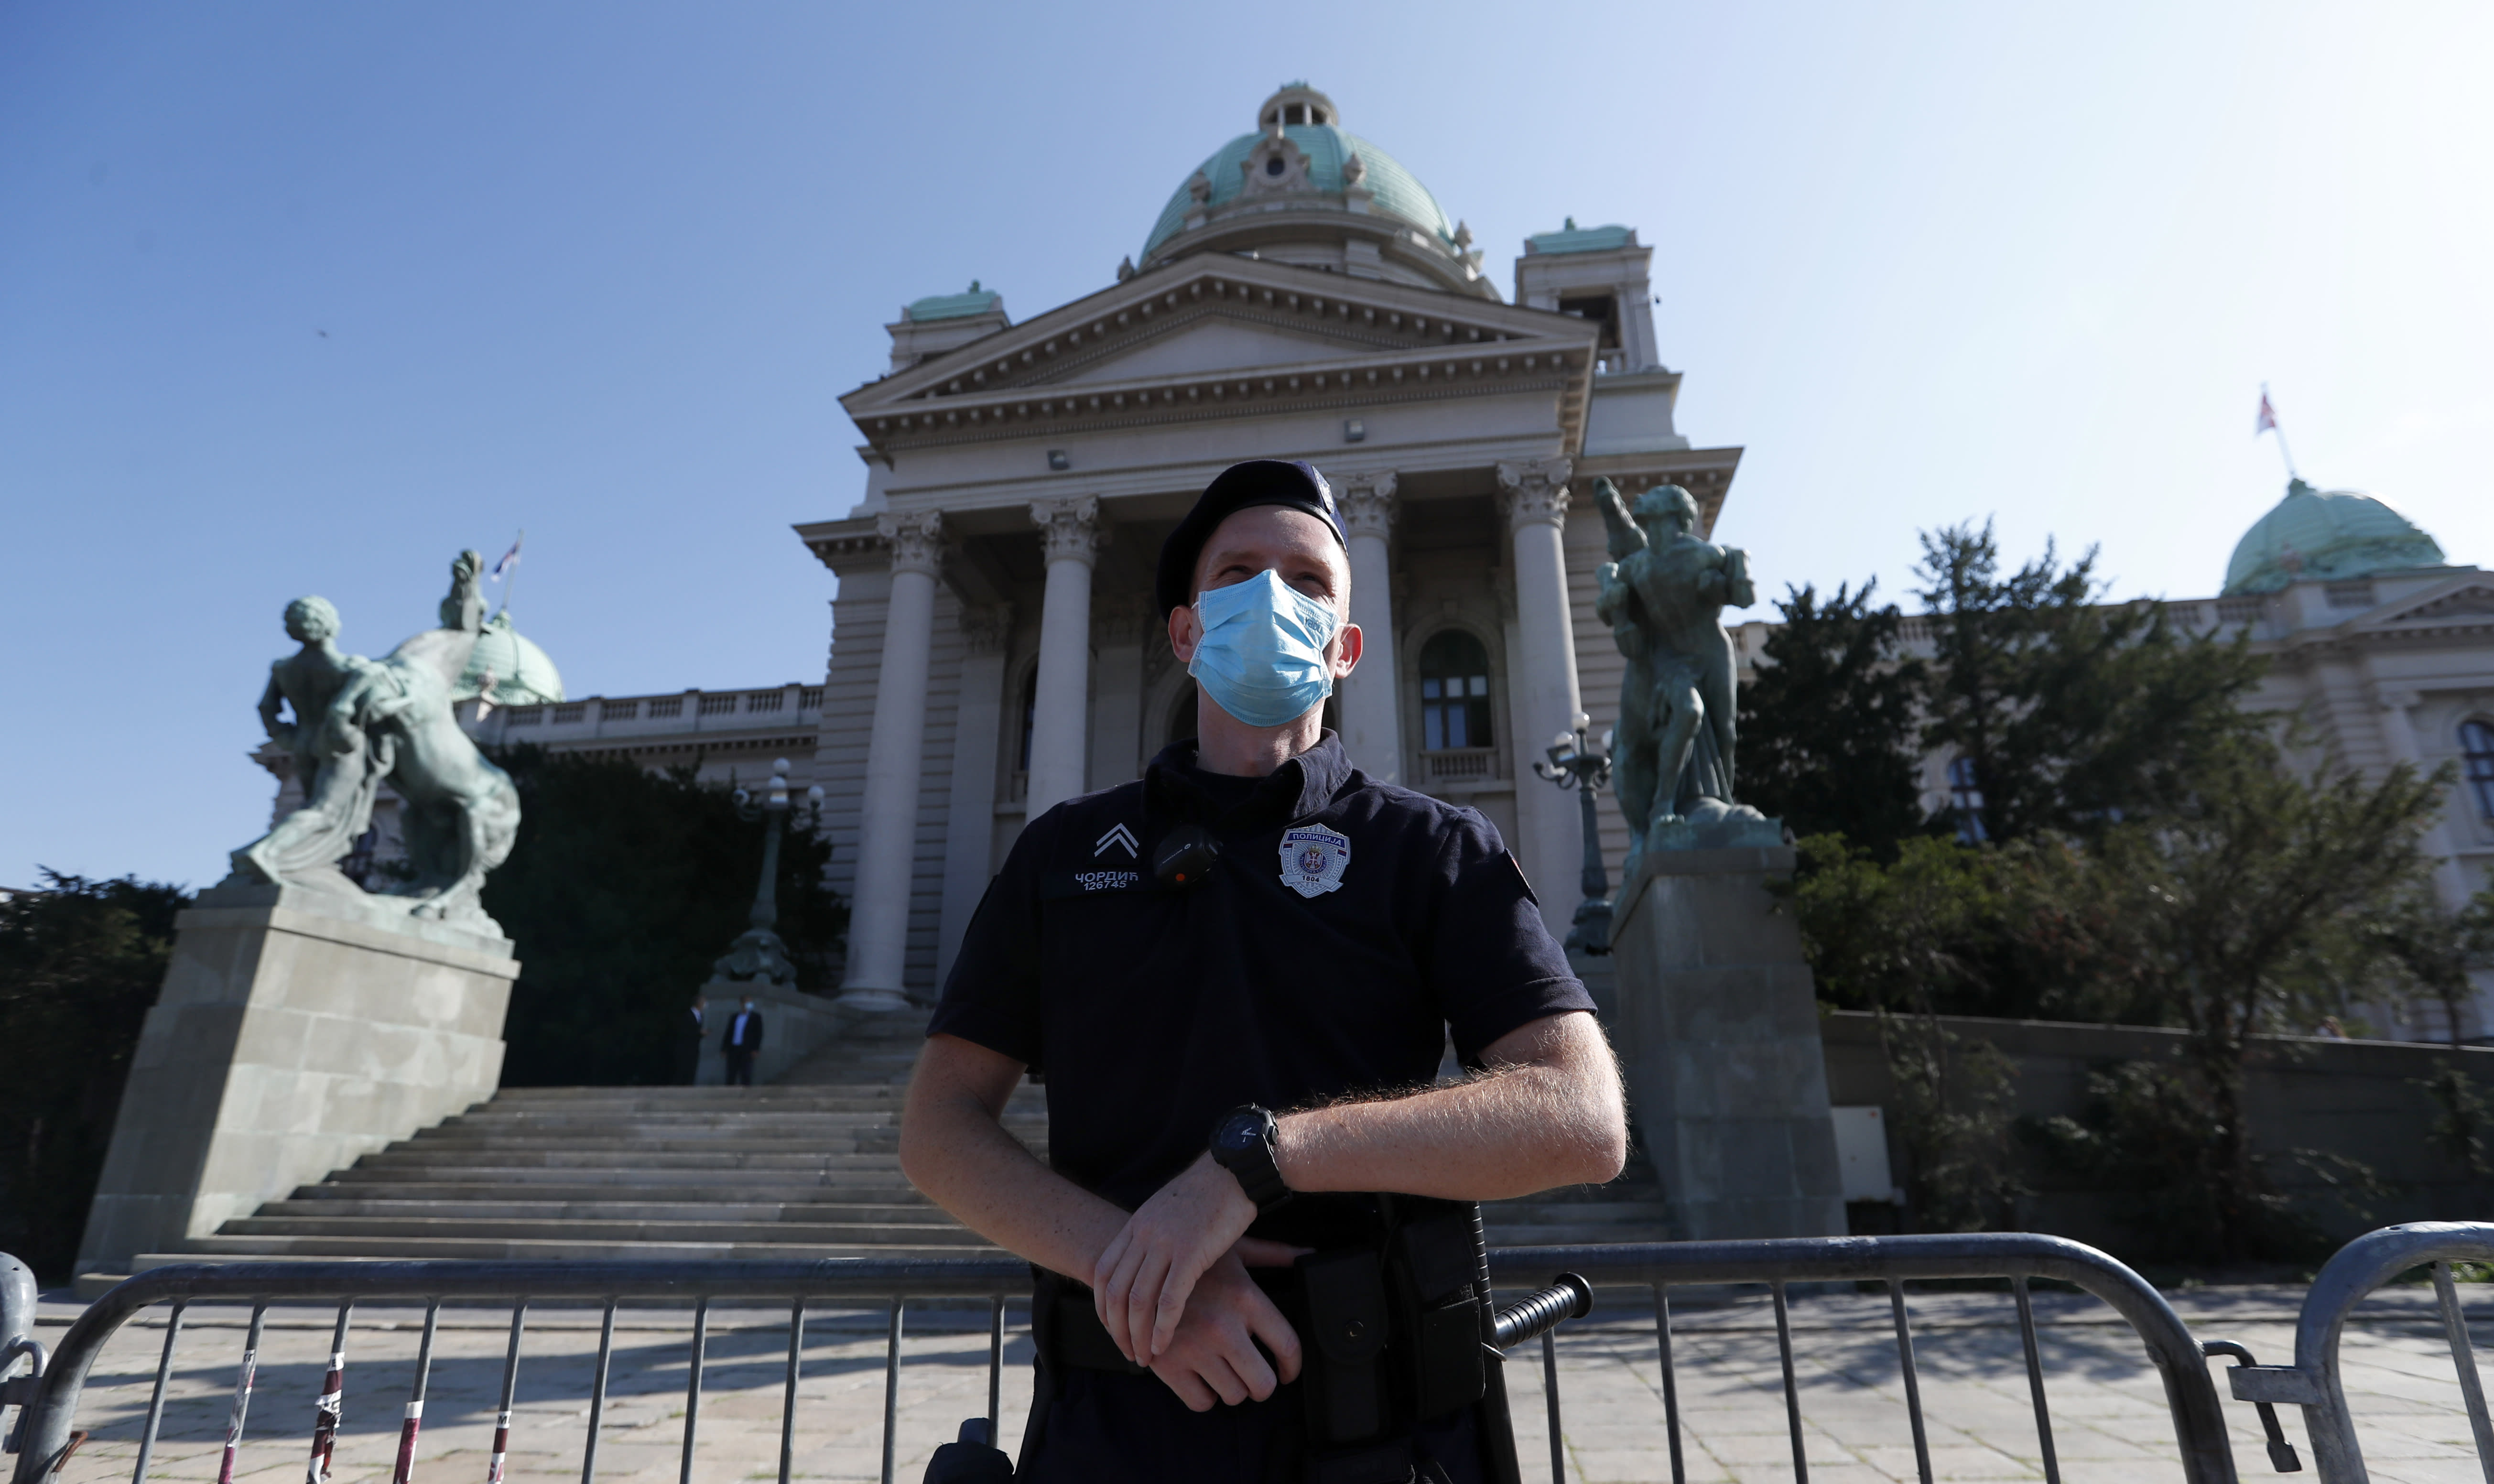 A Serbian police officer wearing a face mask to prevent the spread of coronavirus guards the parliament building before the inaugural parliament session in Belgrade, Serbia, Monday, Aug. 3, 2020. The Serbian parliament reconvened Monday amid protests by opposition and far-right supporters who claim the parliamentary election that was overwhelmingly won by the ruling populists was rigged. (AP Photo/Darko Vojinovic)